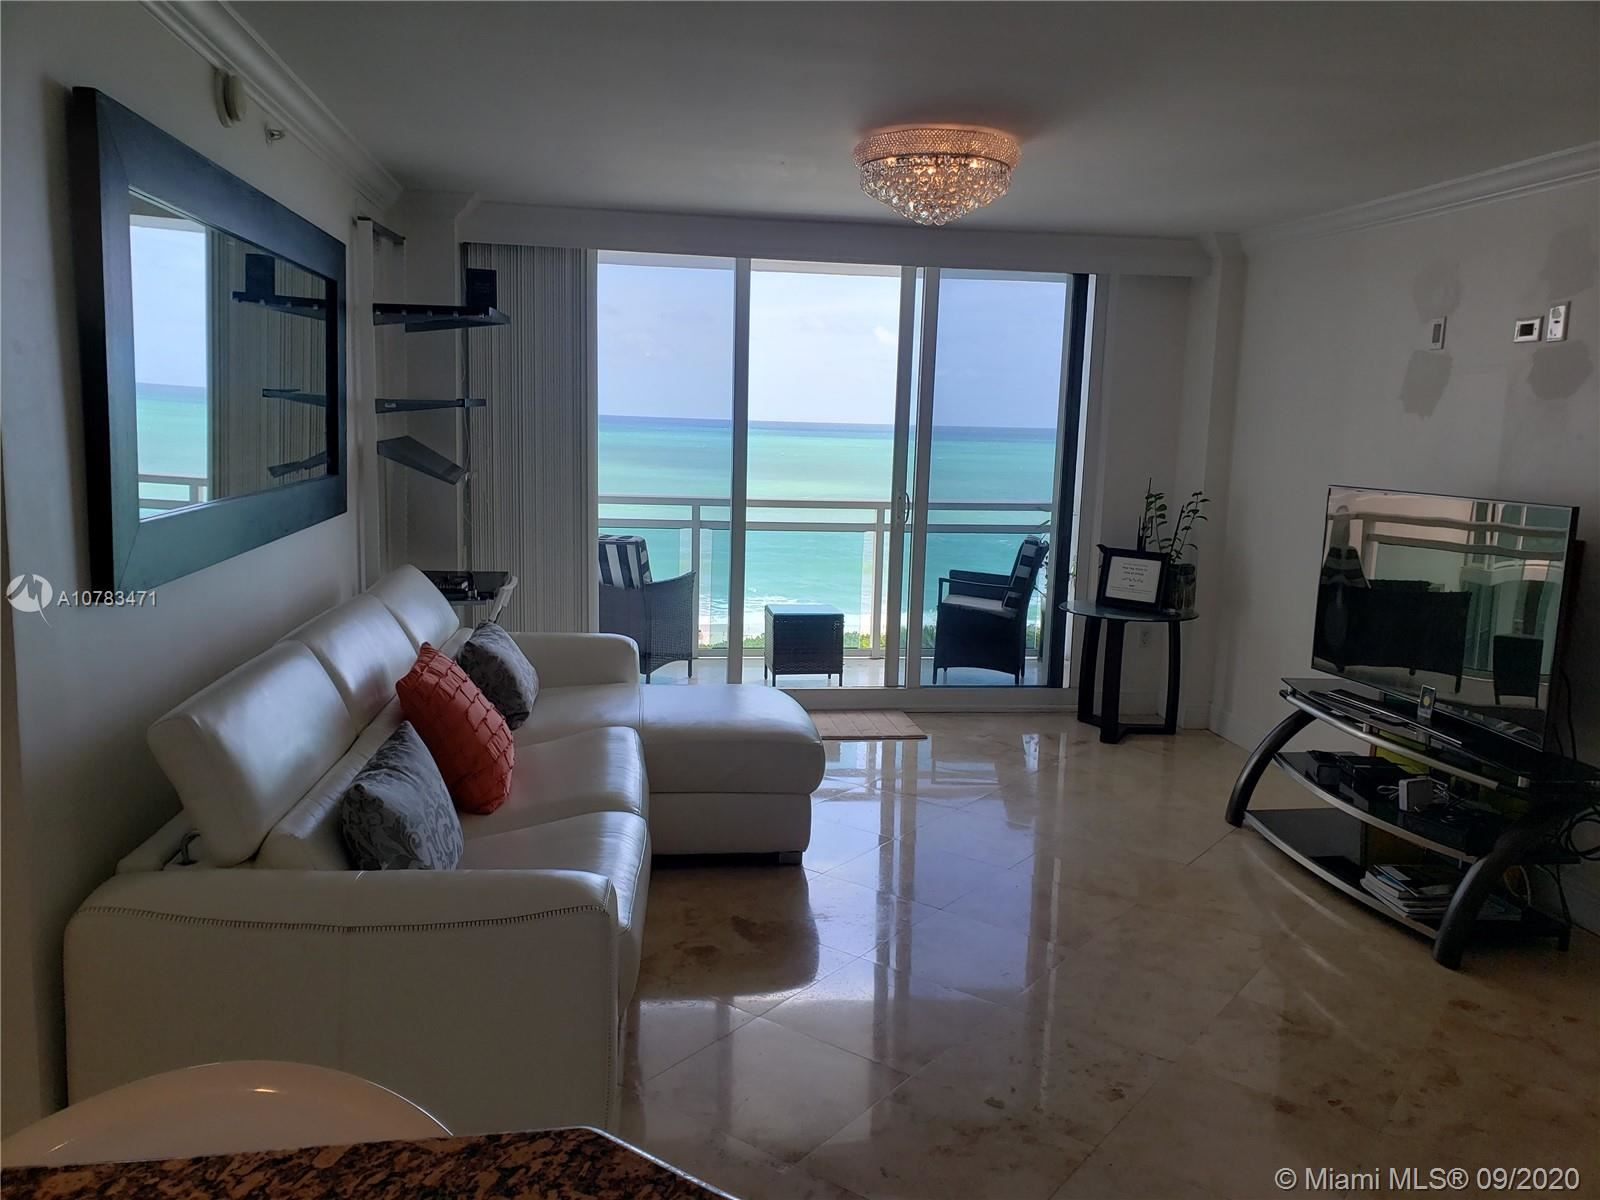 6917 Collins Ave #809, Miami Beach, FL 33141 - #: A10783471